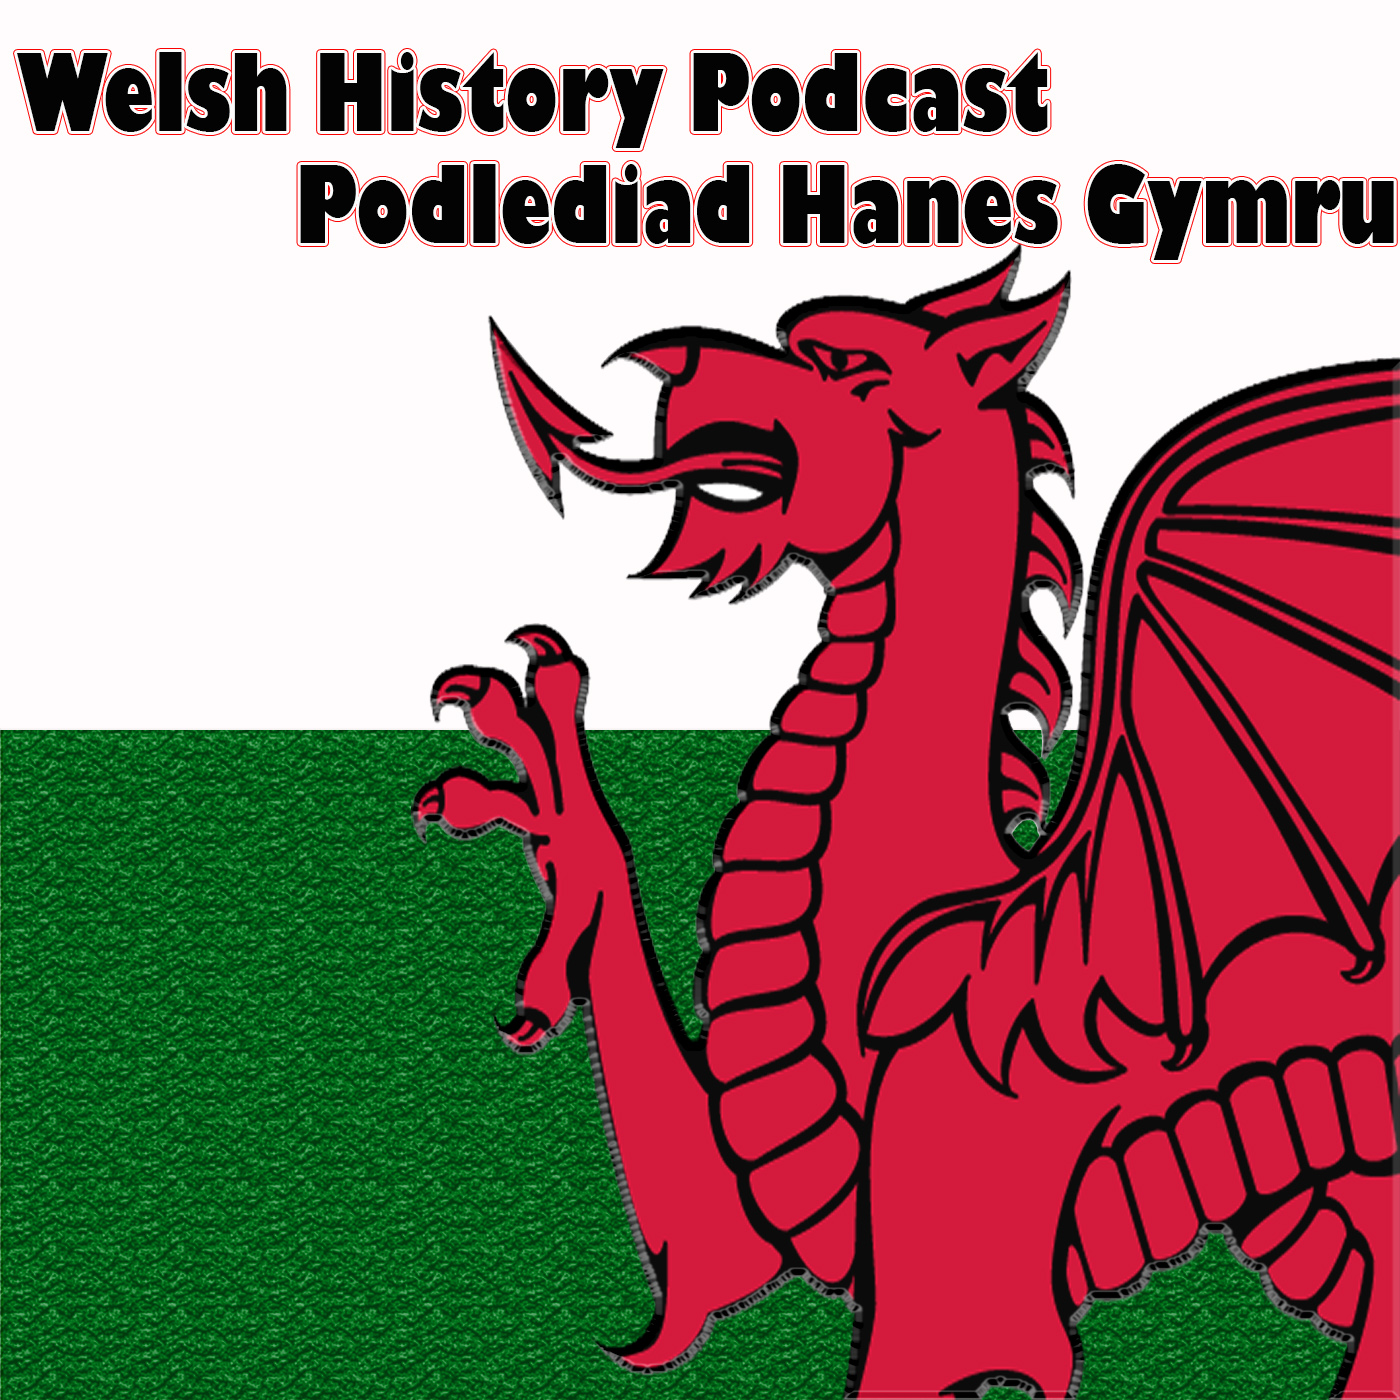 Welsh History Podcast Episode 70: The New Lions